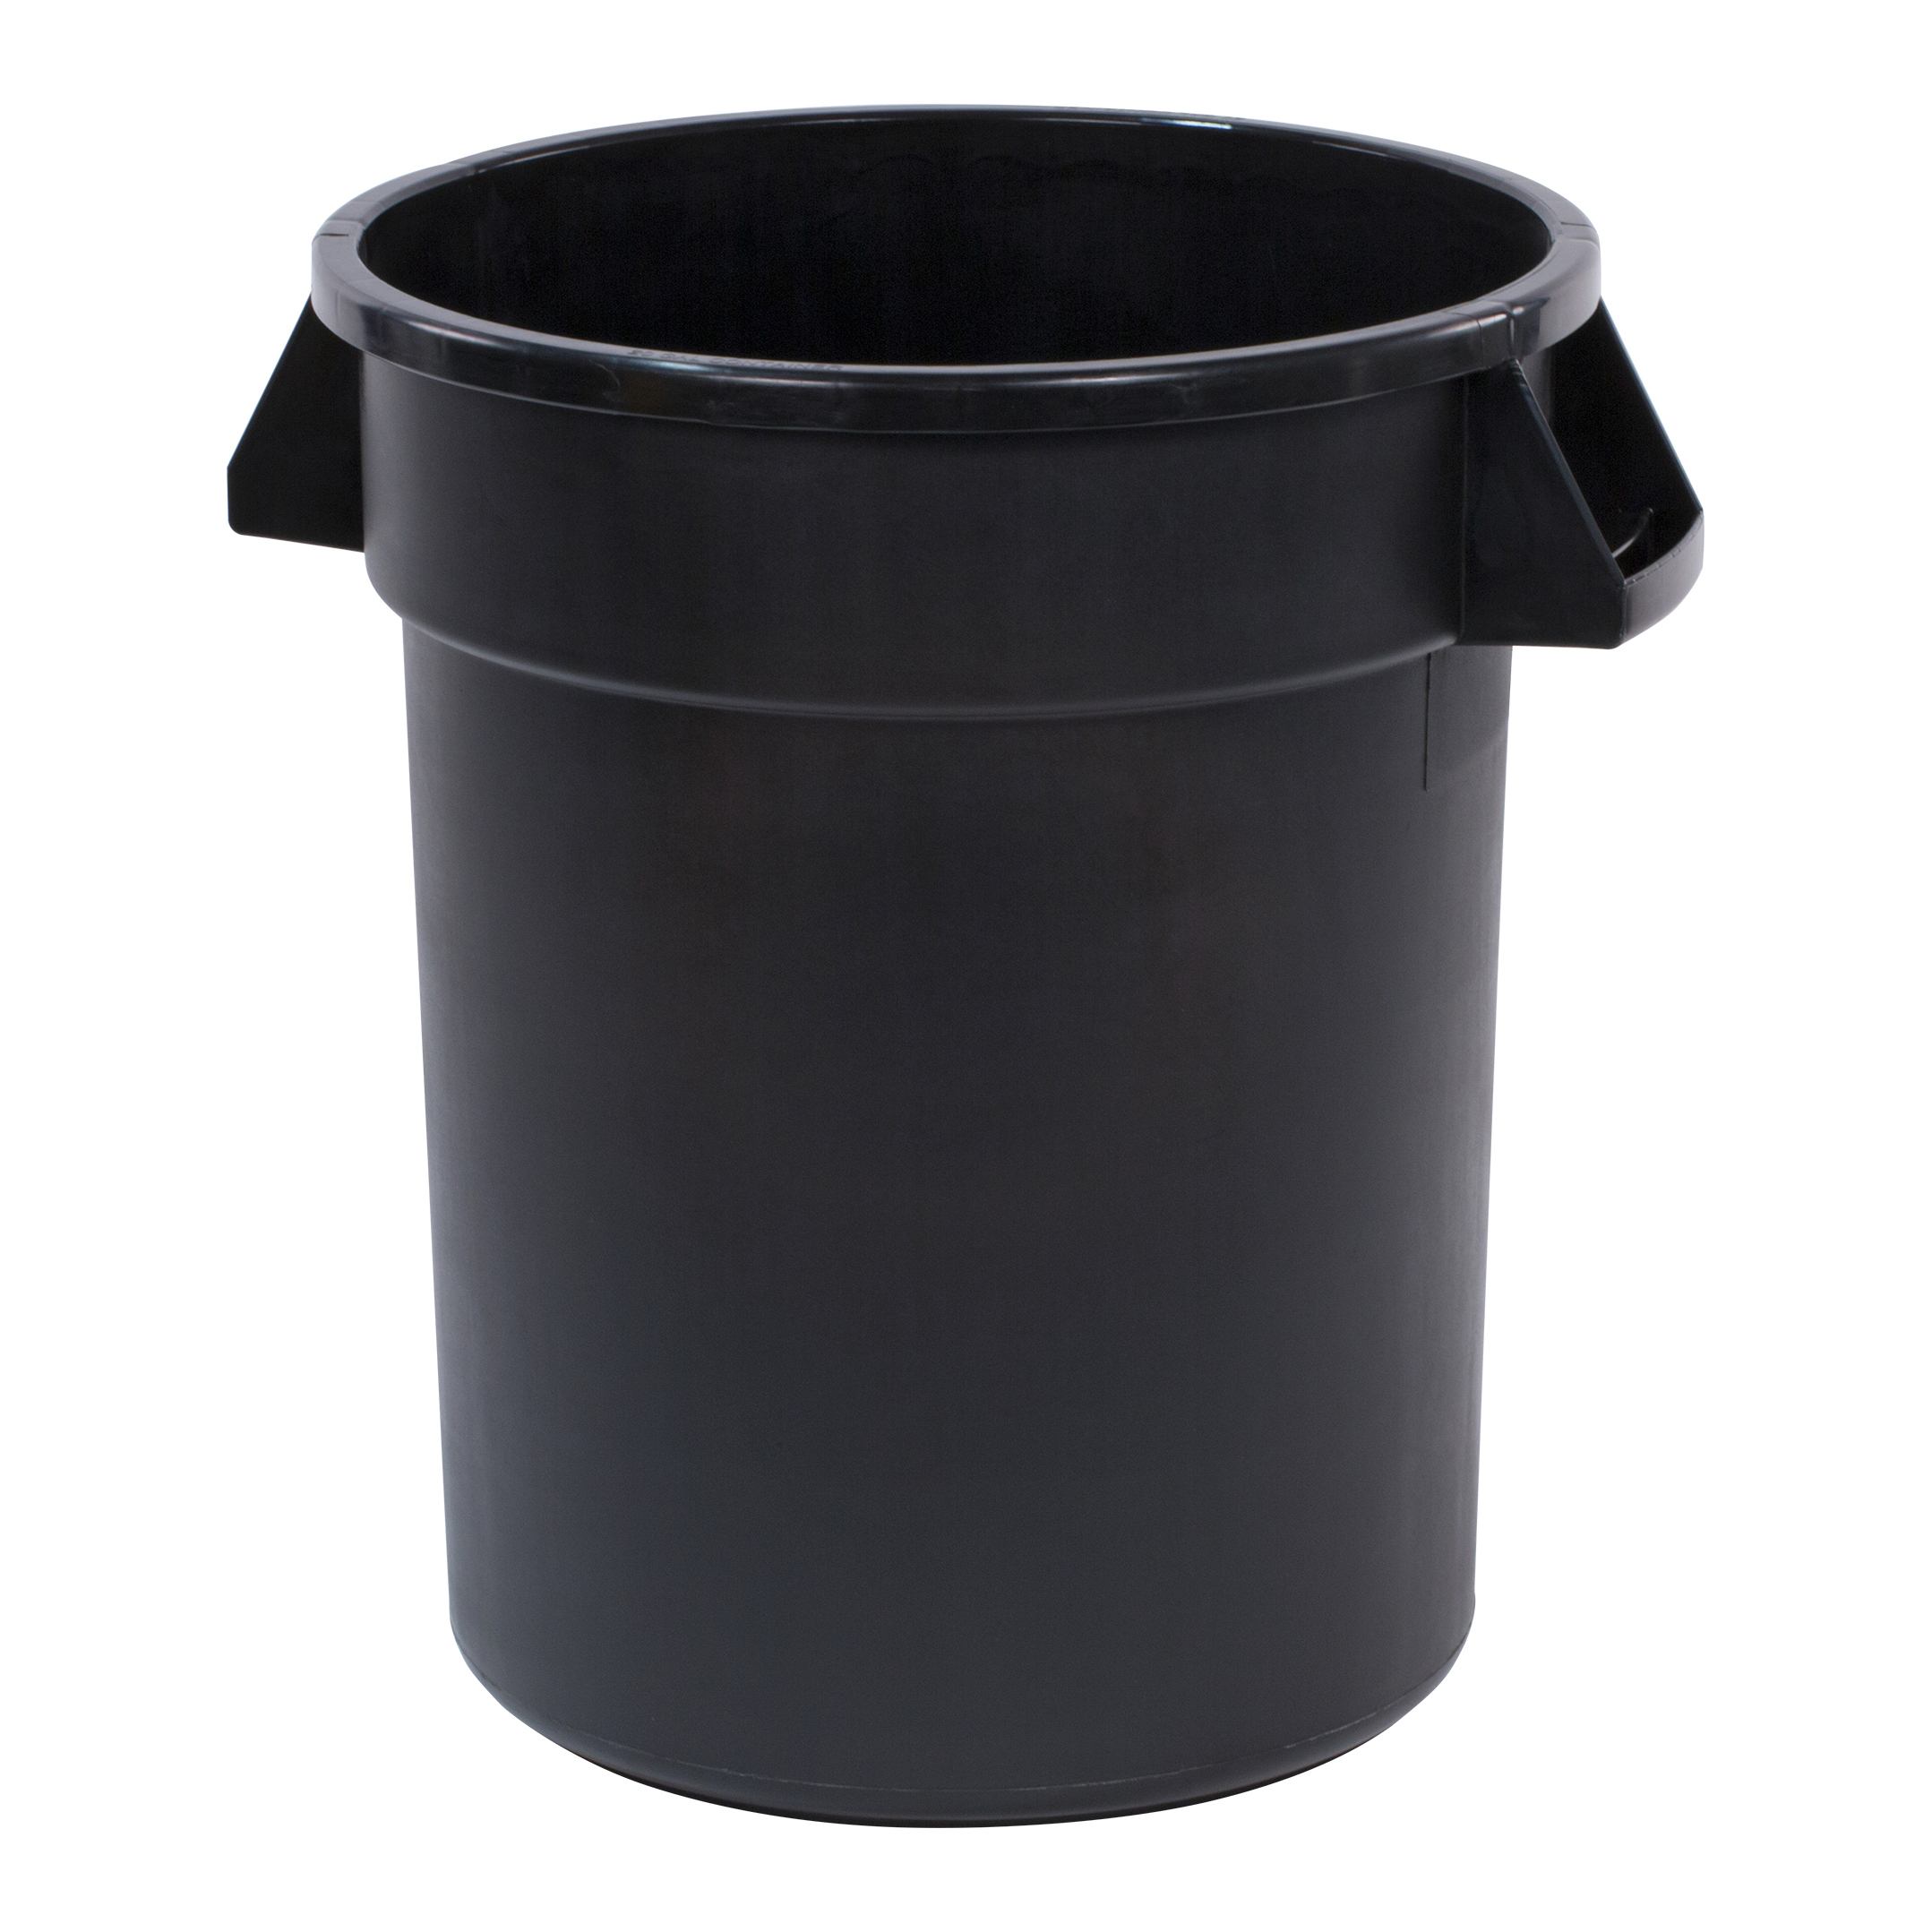 Carlisle 34102003 trash can / container, commercial